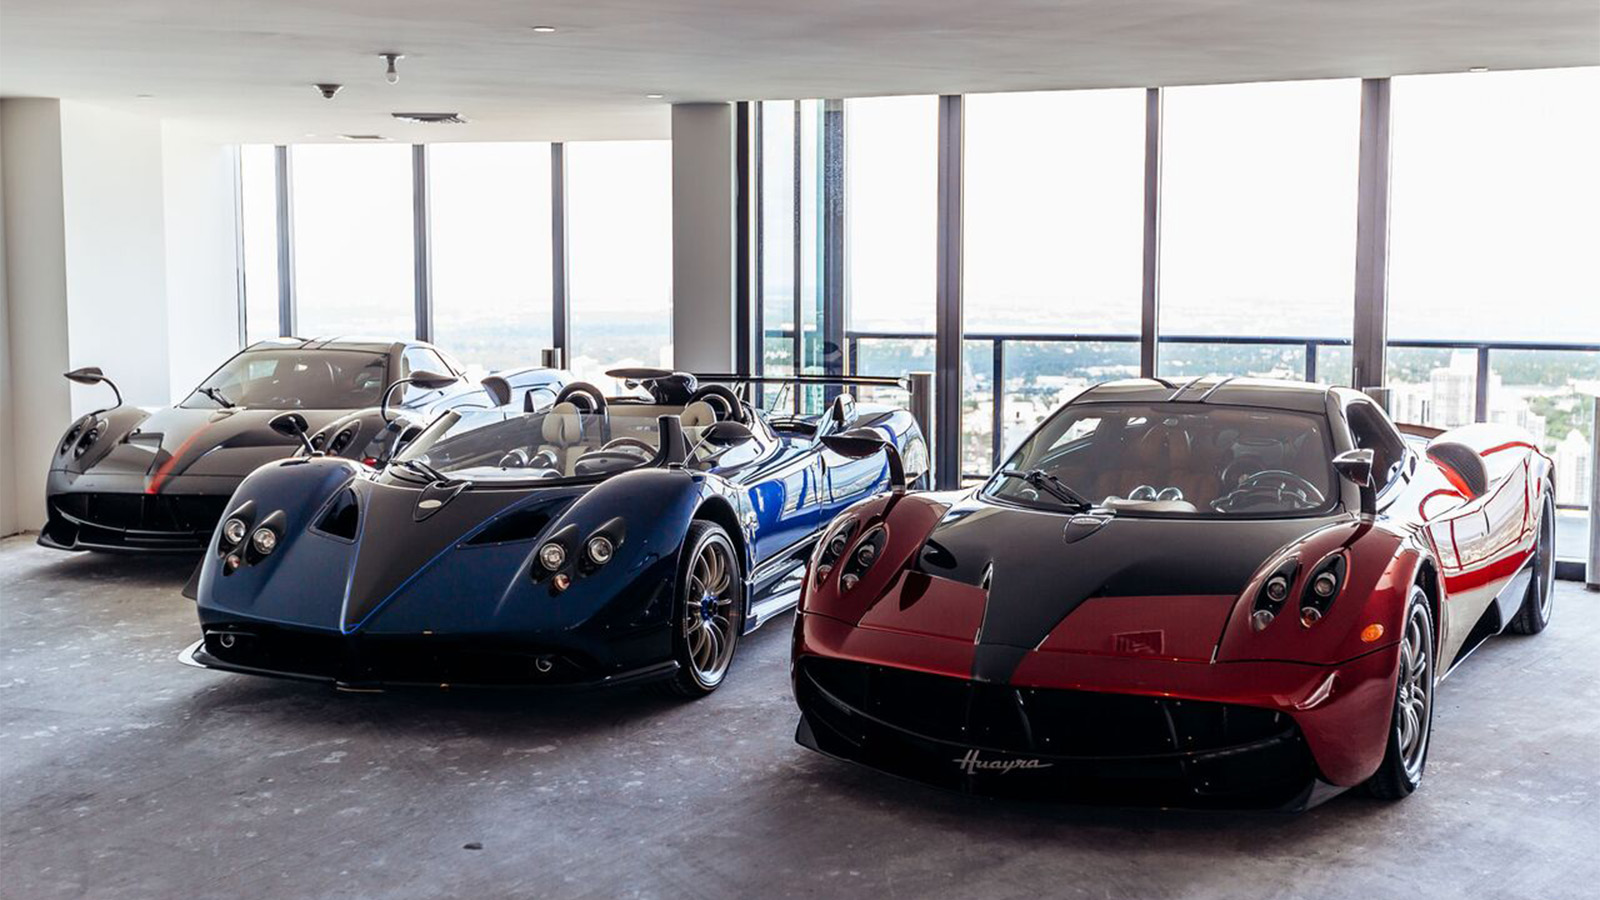 Inside The Luxury Condos That Turn Supercars Into Main Event Cnn Style